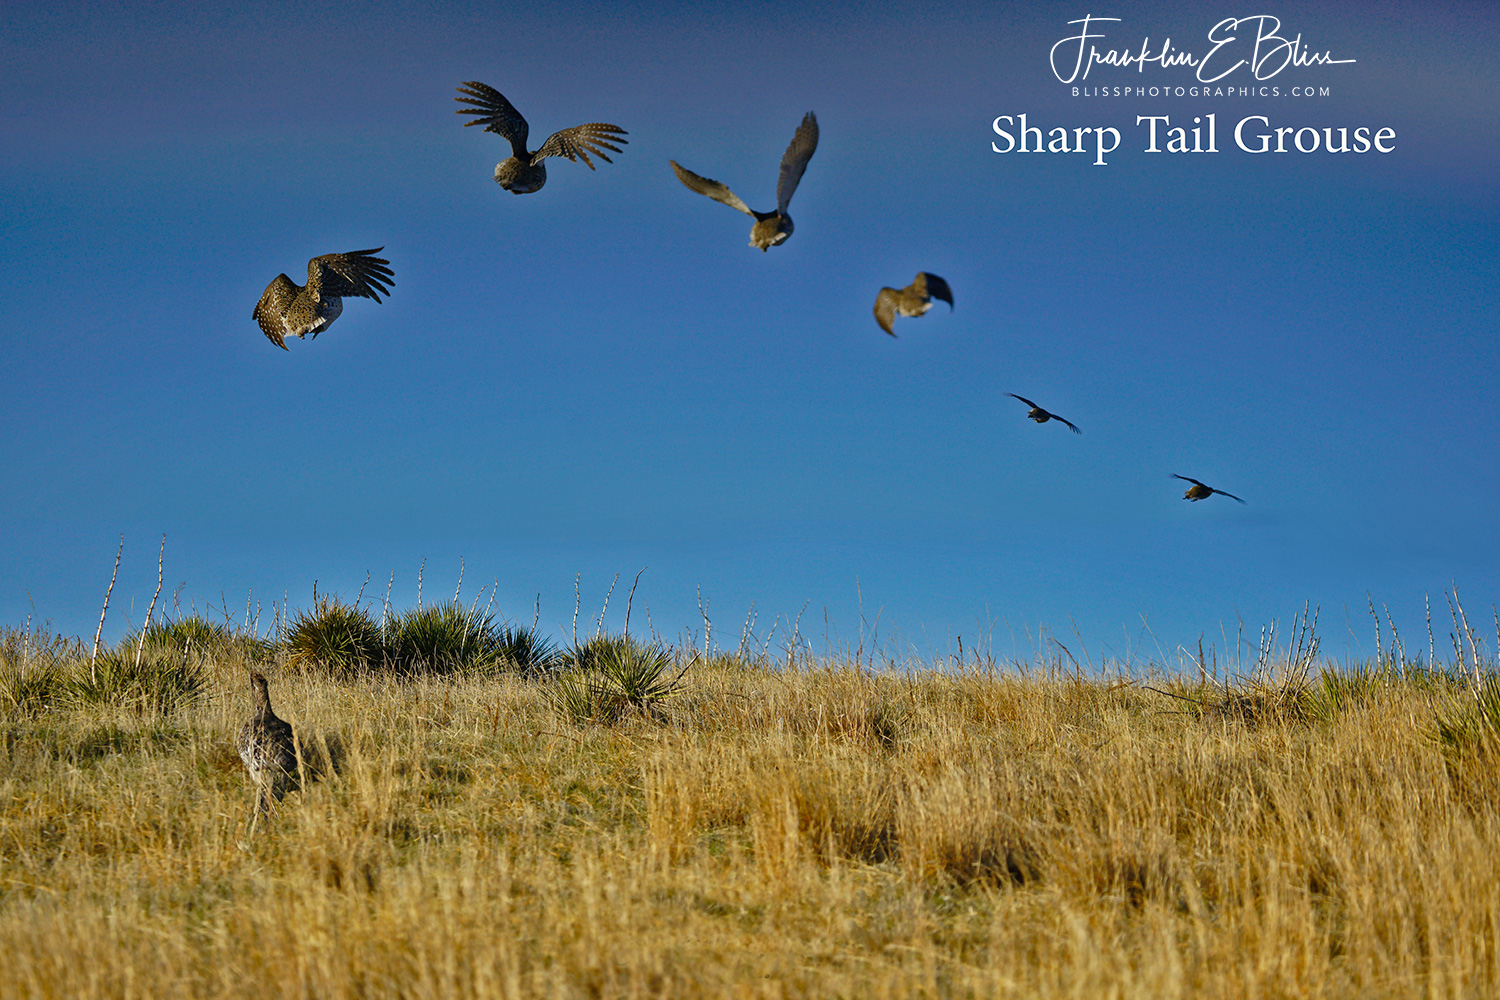 One Sharp Tailed Grouse's Flight Path